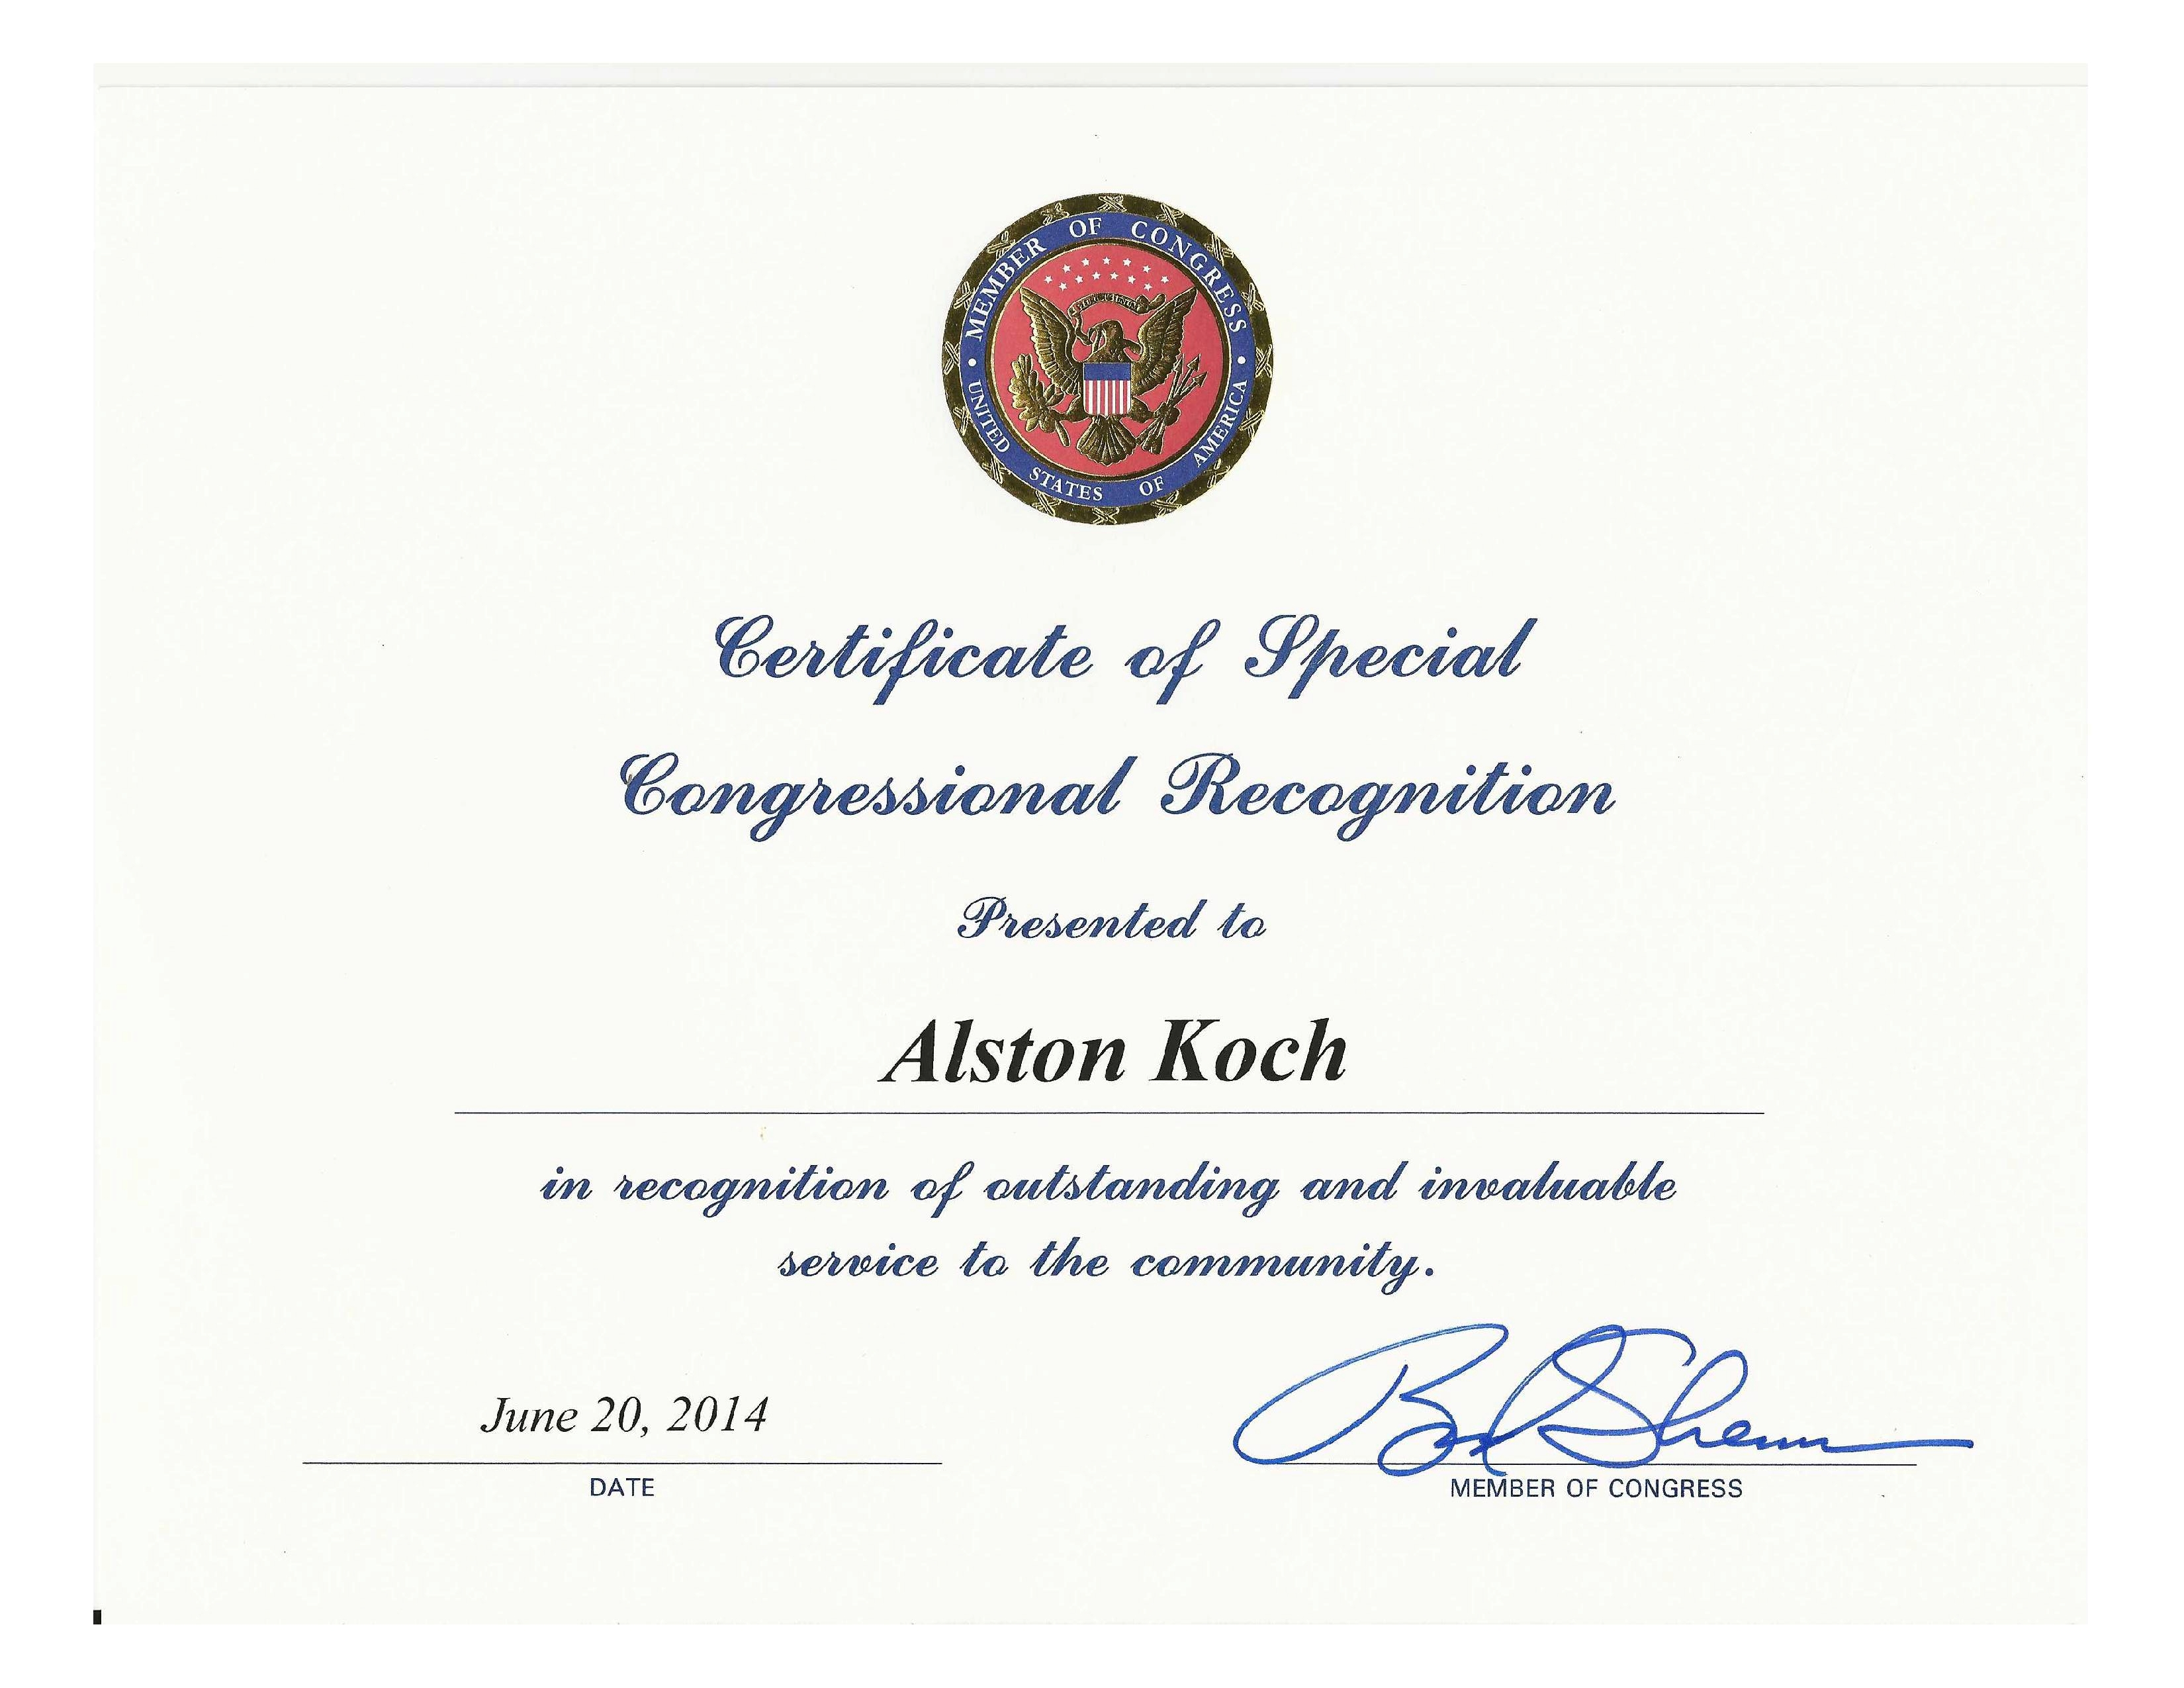 file certificate of special congressional recognition to alston koch